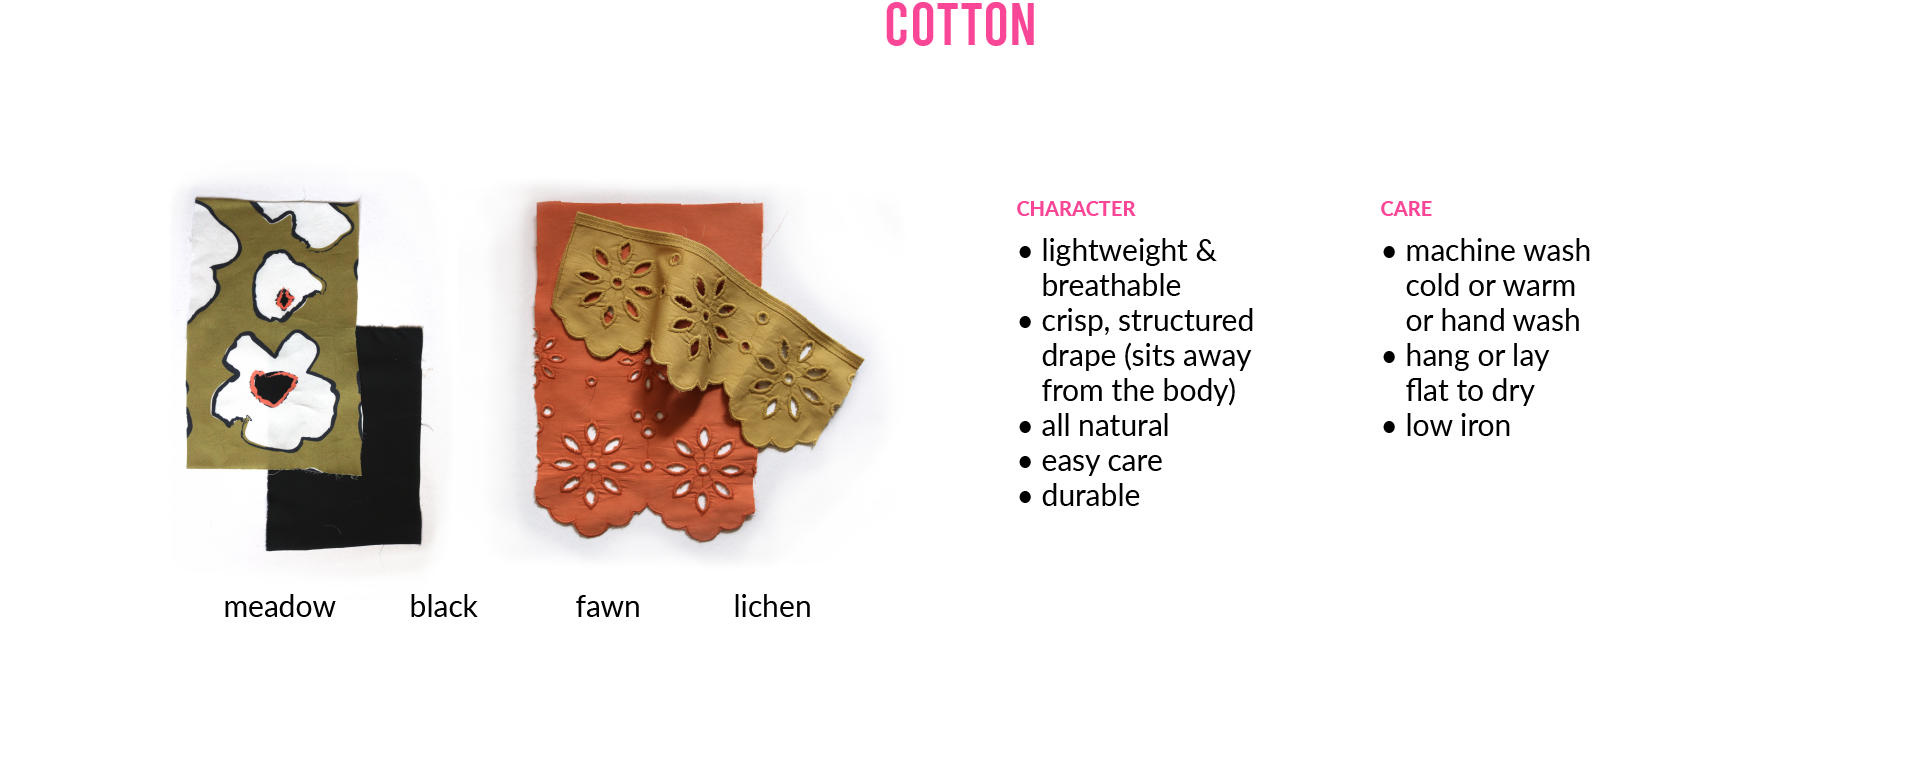 Cotton. Photo of fabric swatches: meadow, black, fawn, lichen. CHARACTER • lightweight & breathable • crisp, structured drape (sits away from the body) • all natural • easy care • durable CARE • machine wash cold or warmor hand wash • hang or lay flat to dry • low iron